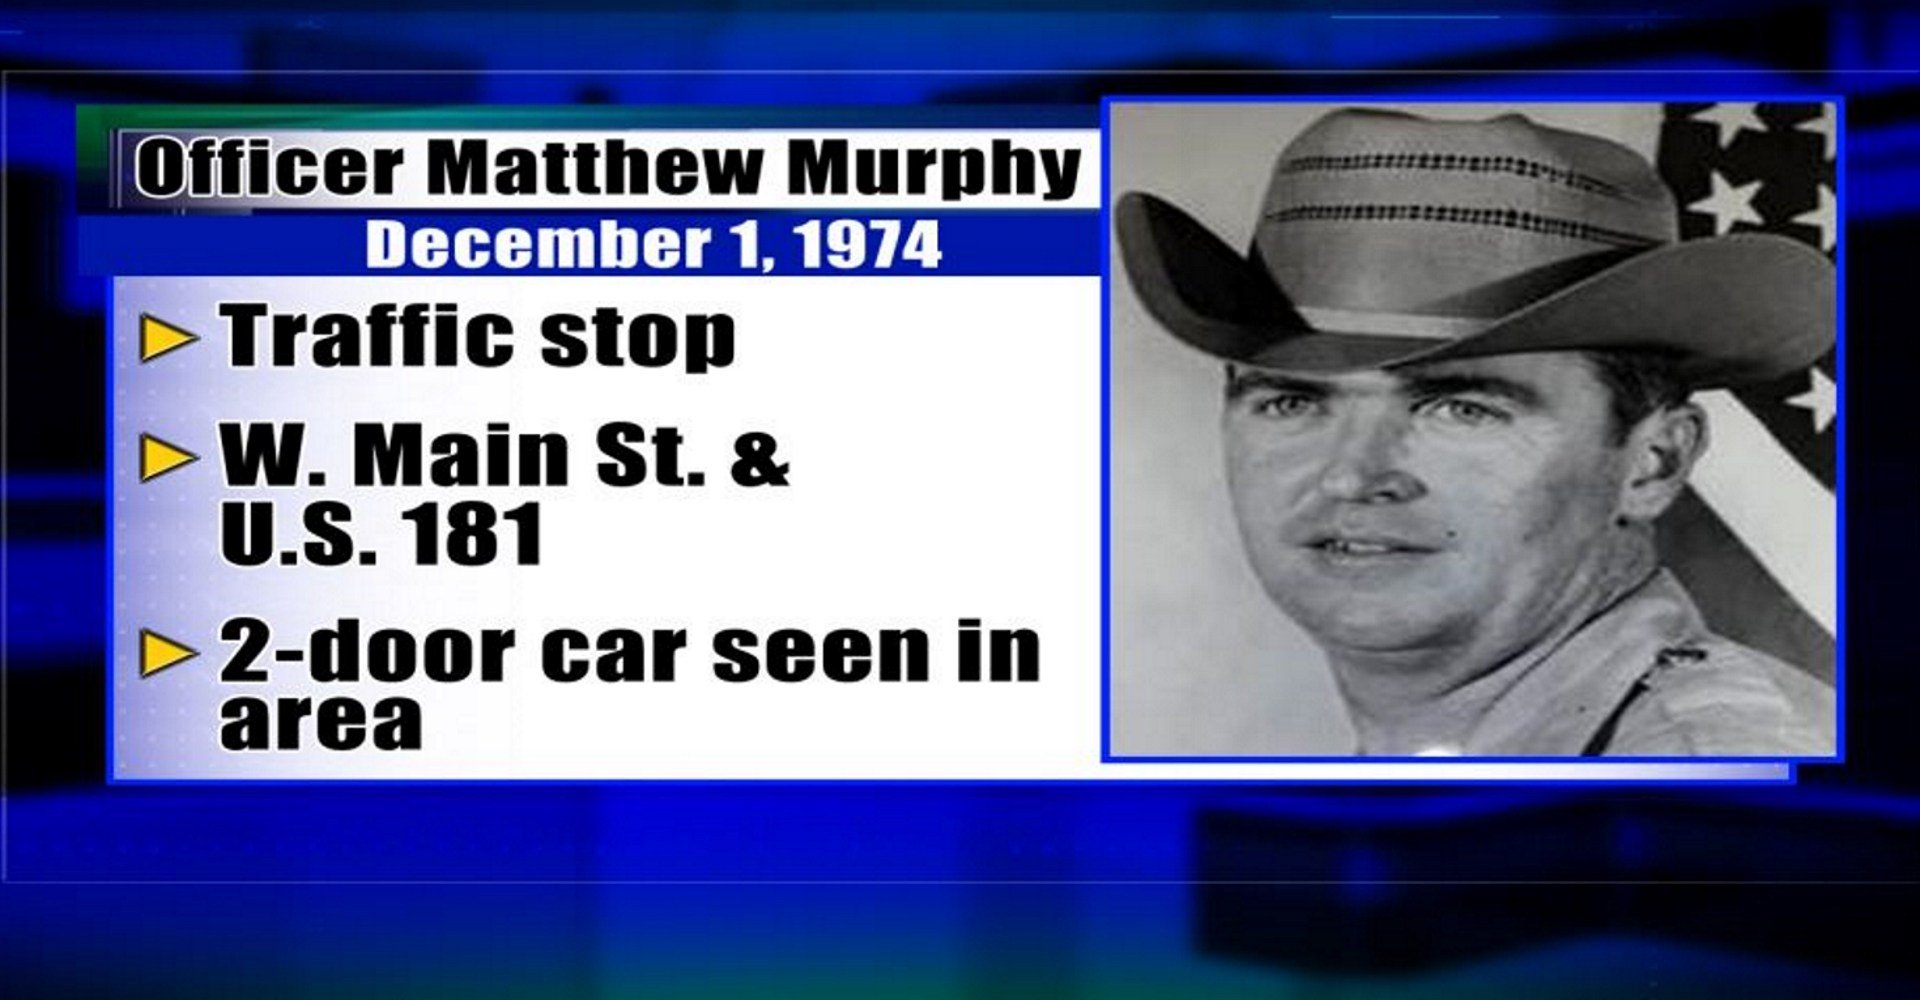 Officer Matthew Murphy was killed during a traffic stop on Dec. 1, 1974.